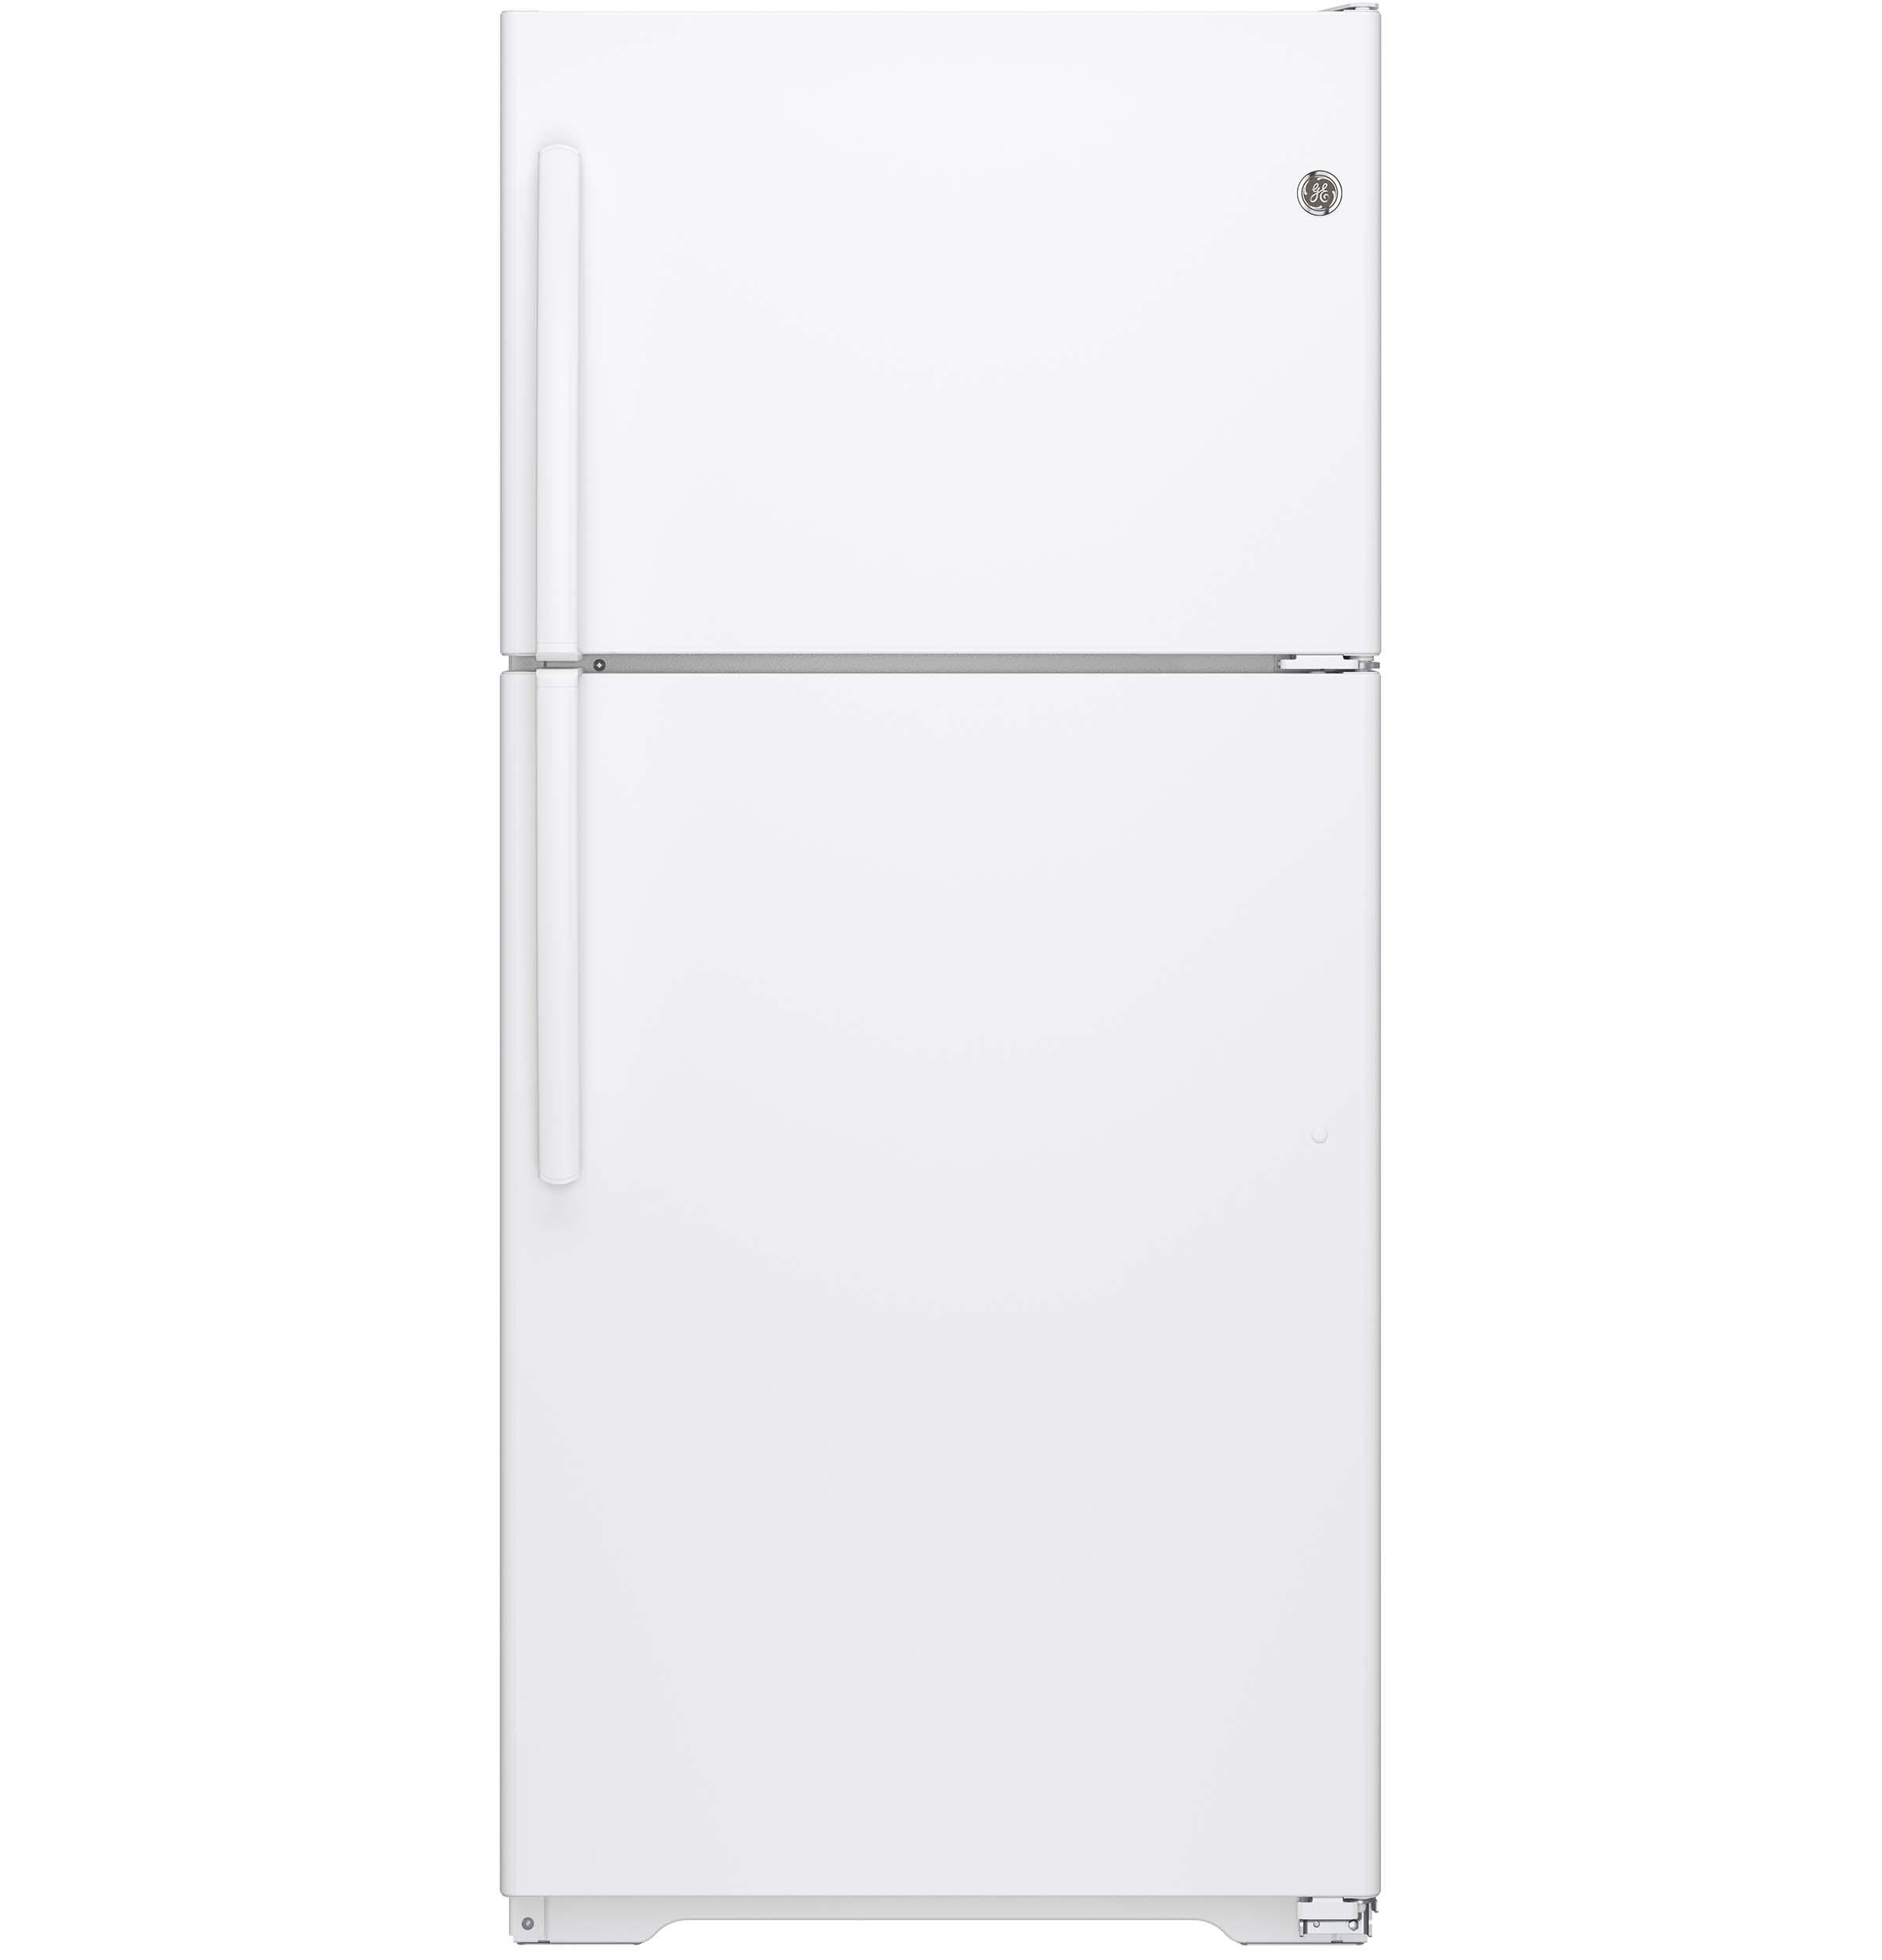 GE® ENERGY STAR® 18.2 Cu. Ft. Top Freezer Refrigerator